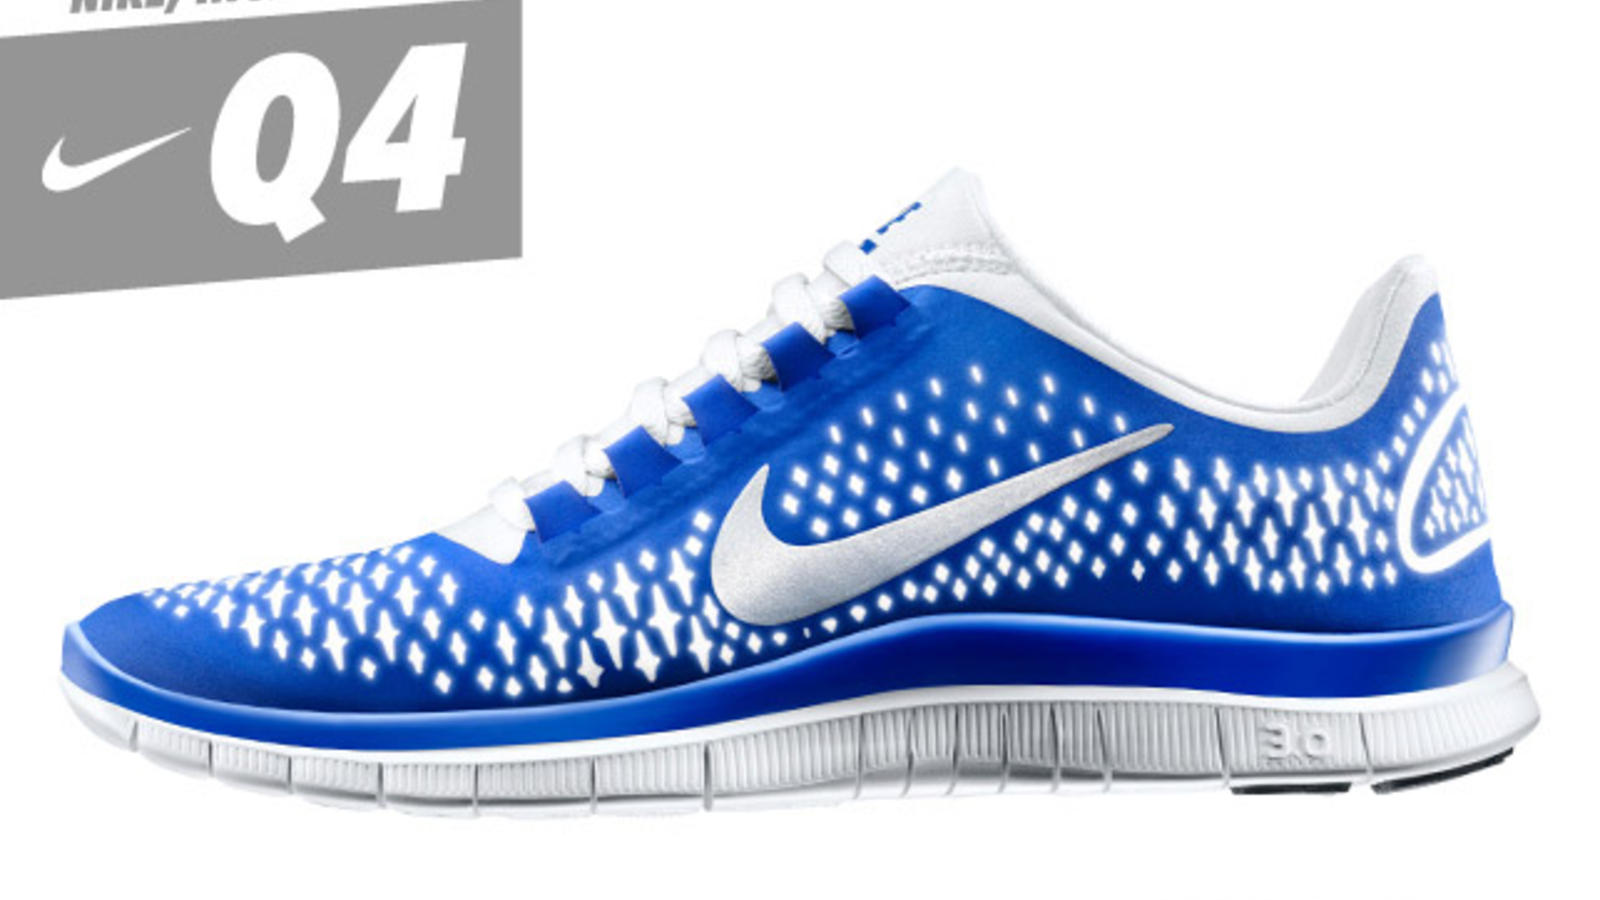 nike inc reports fiscal 2012 fourth quarter and full year results